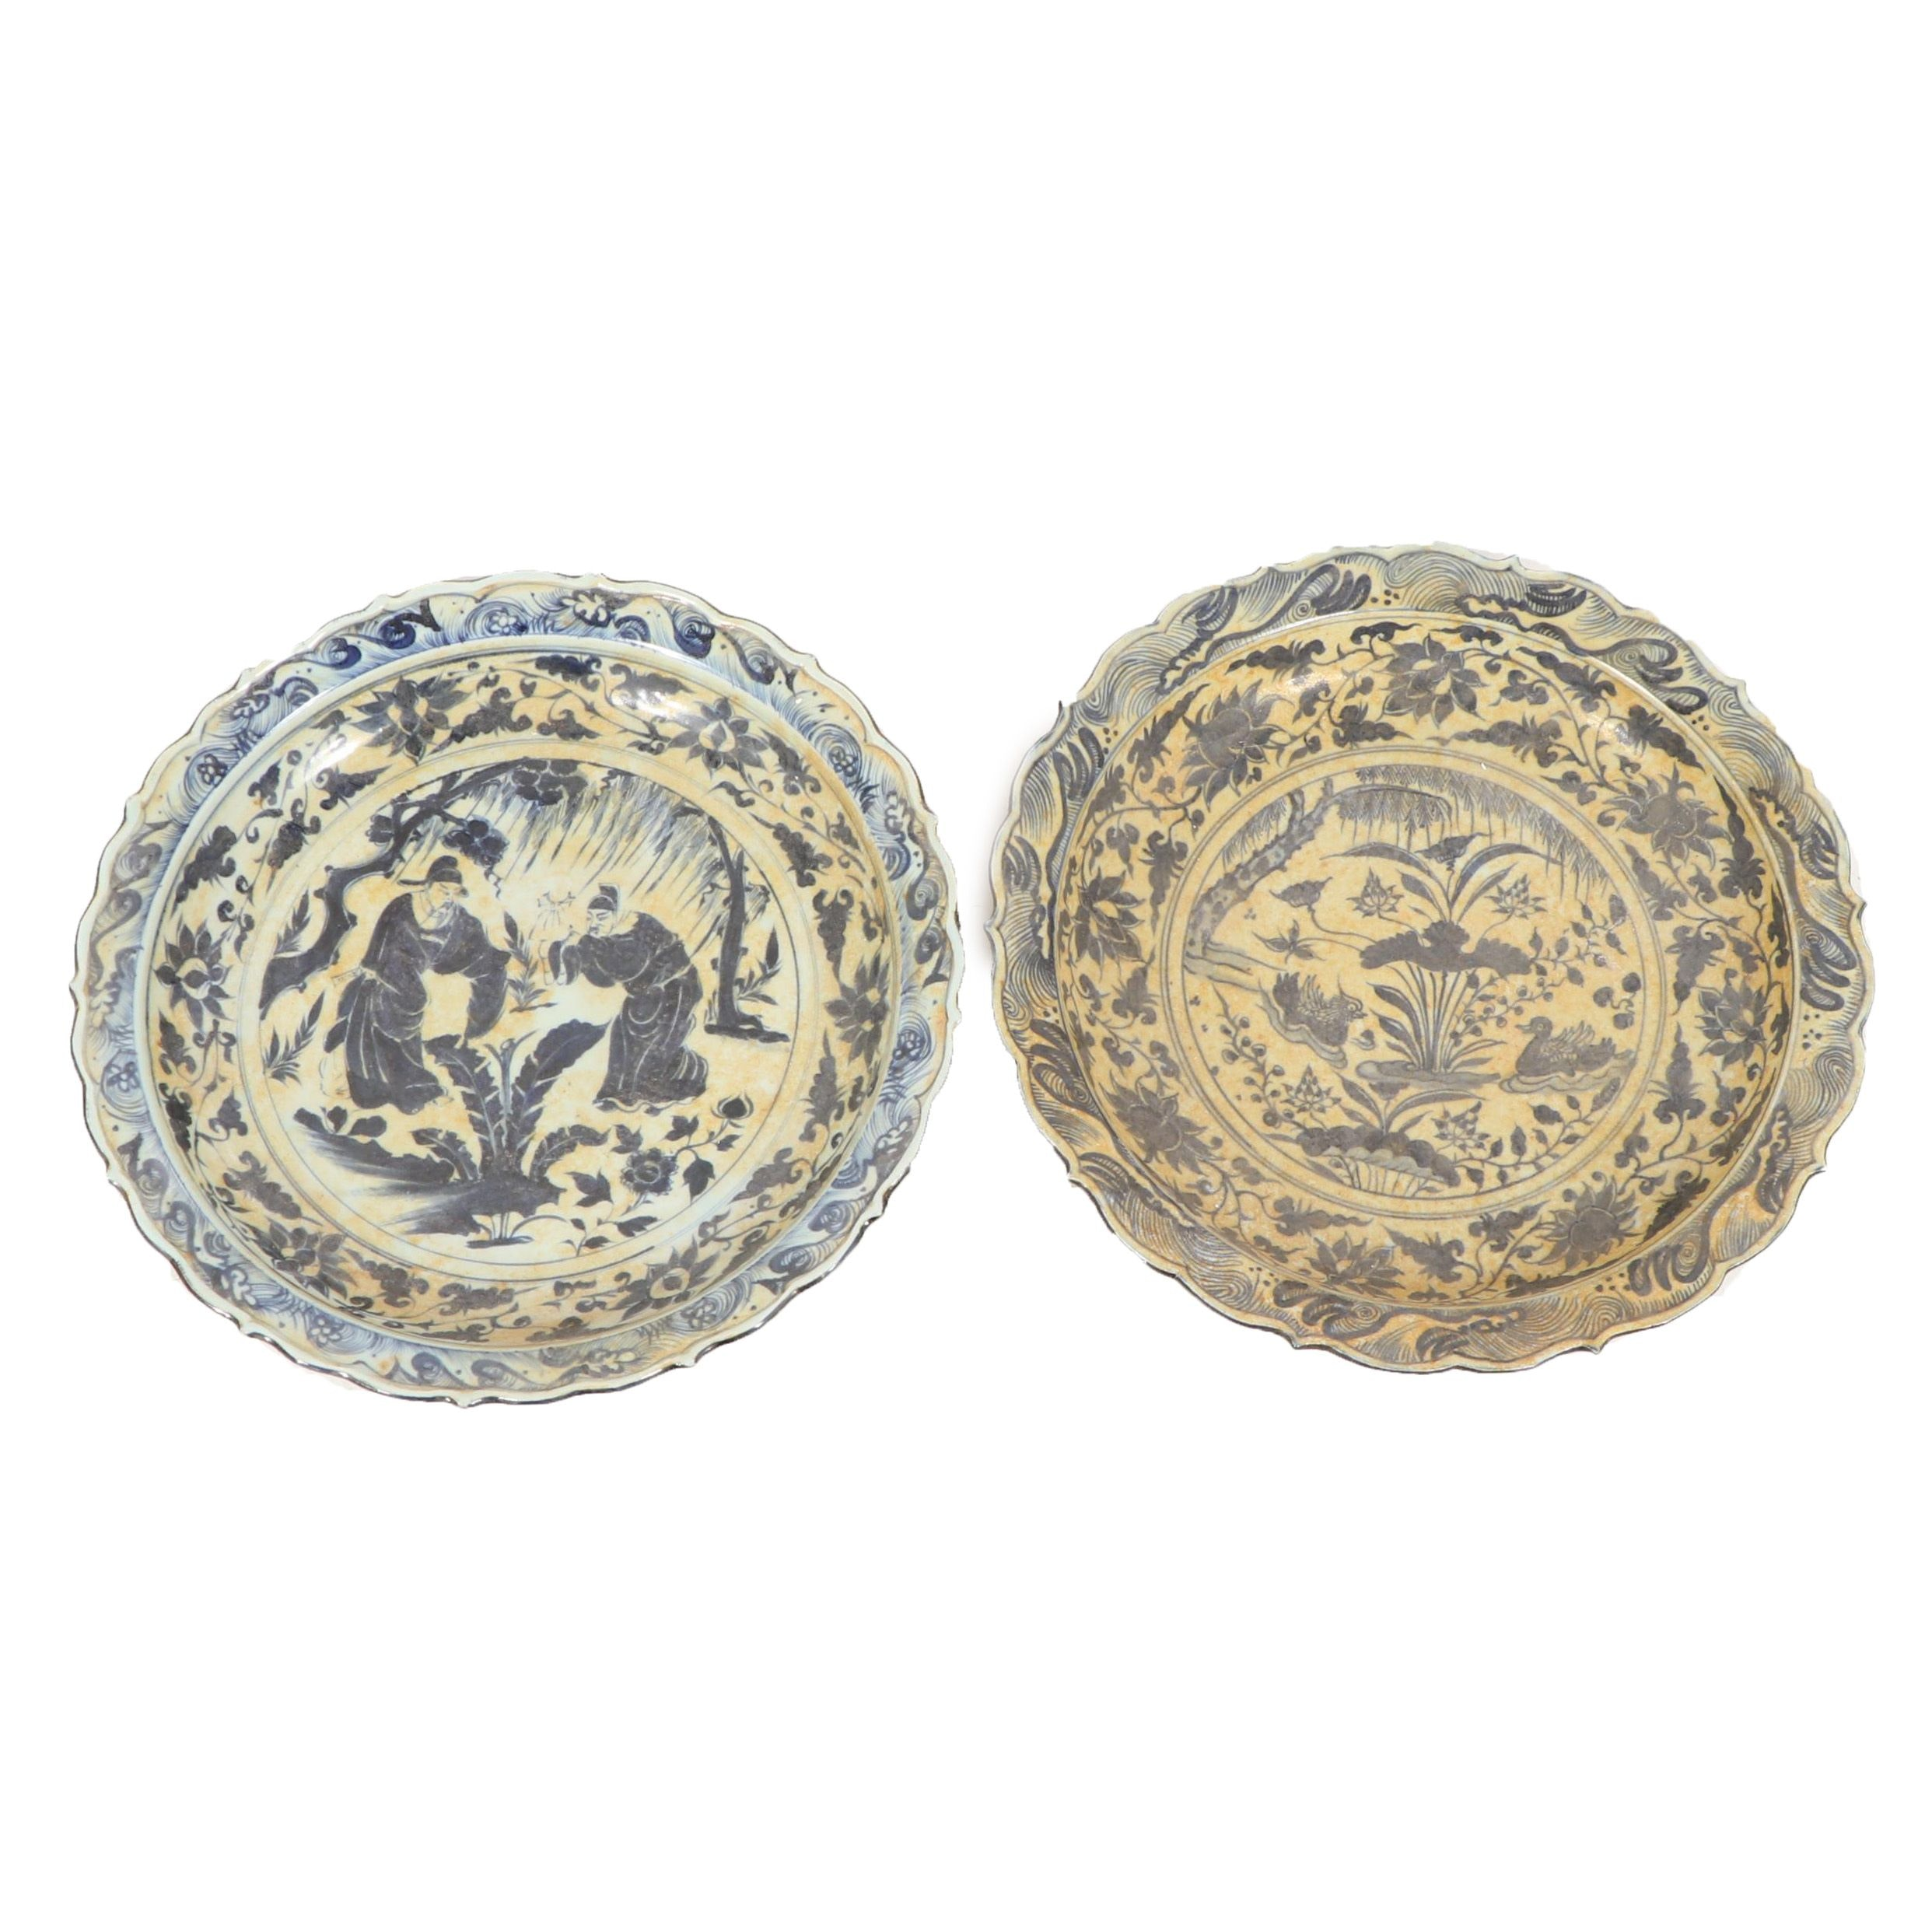 Chinese Blue and White Decorative Drainage Plates